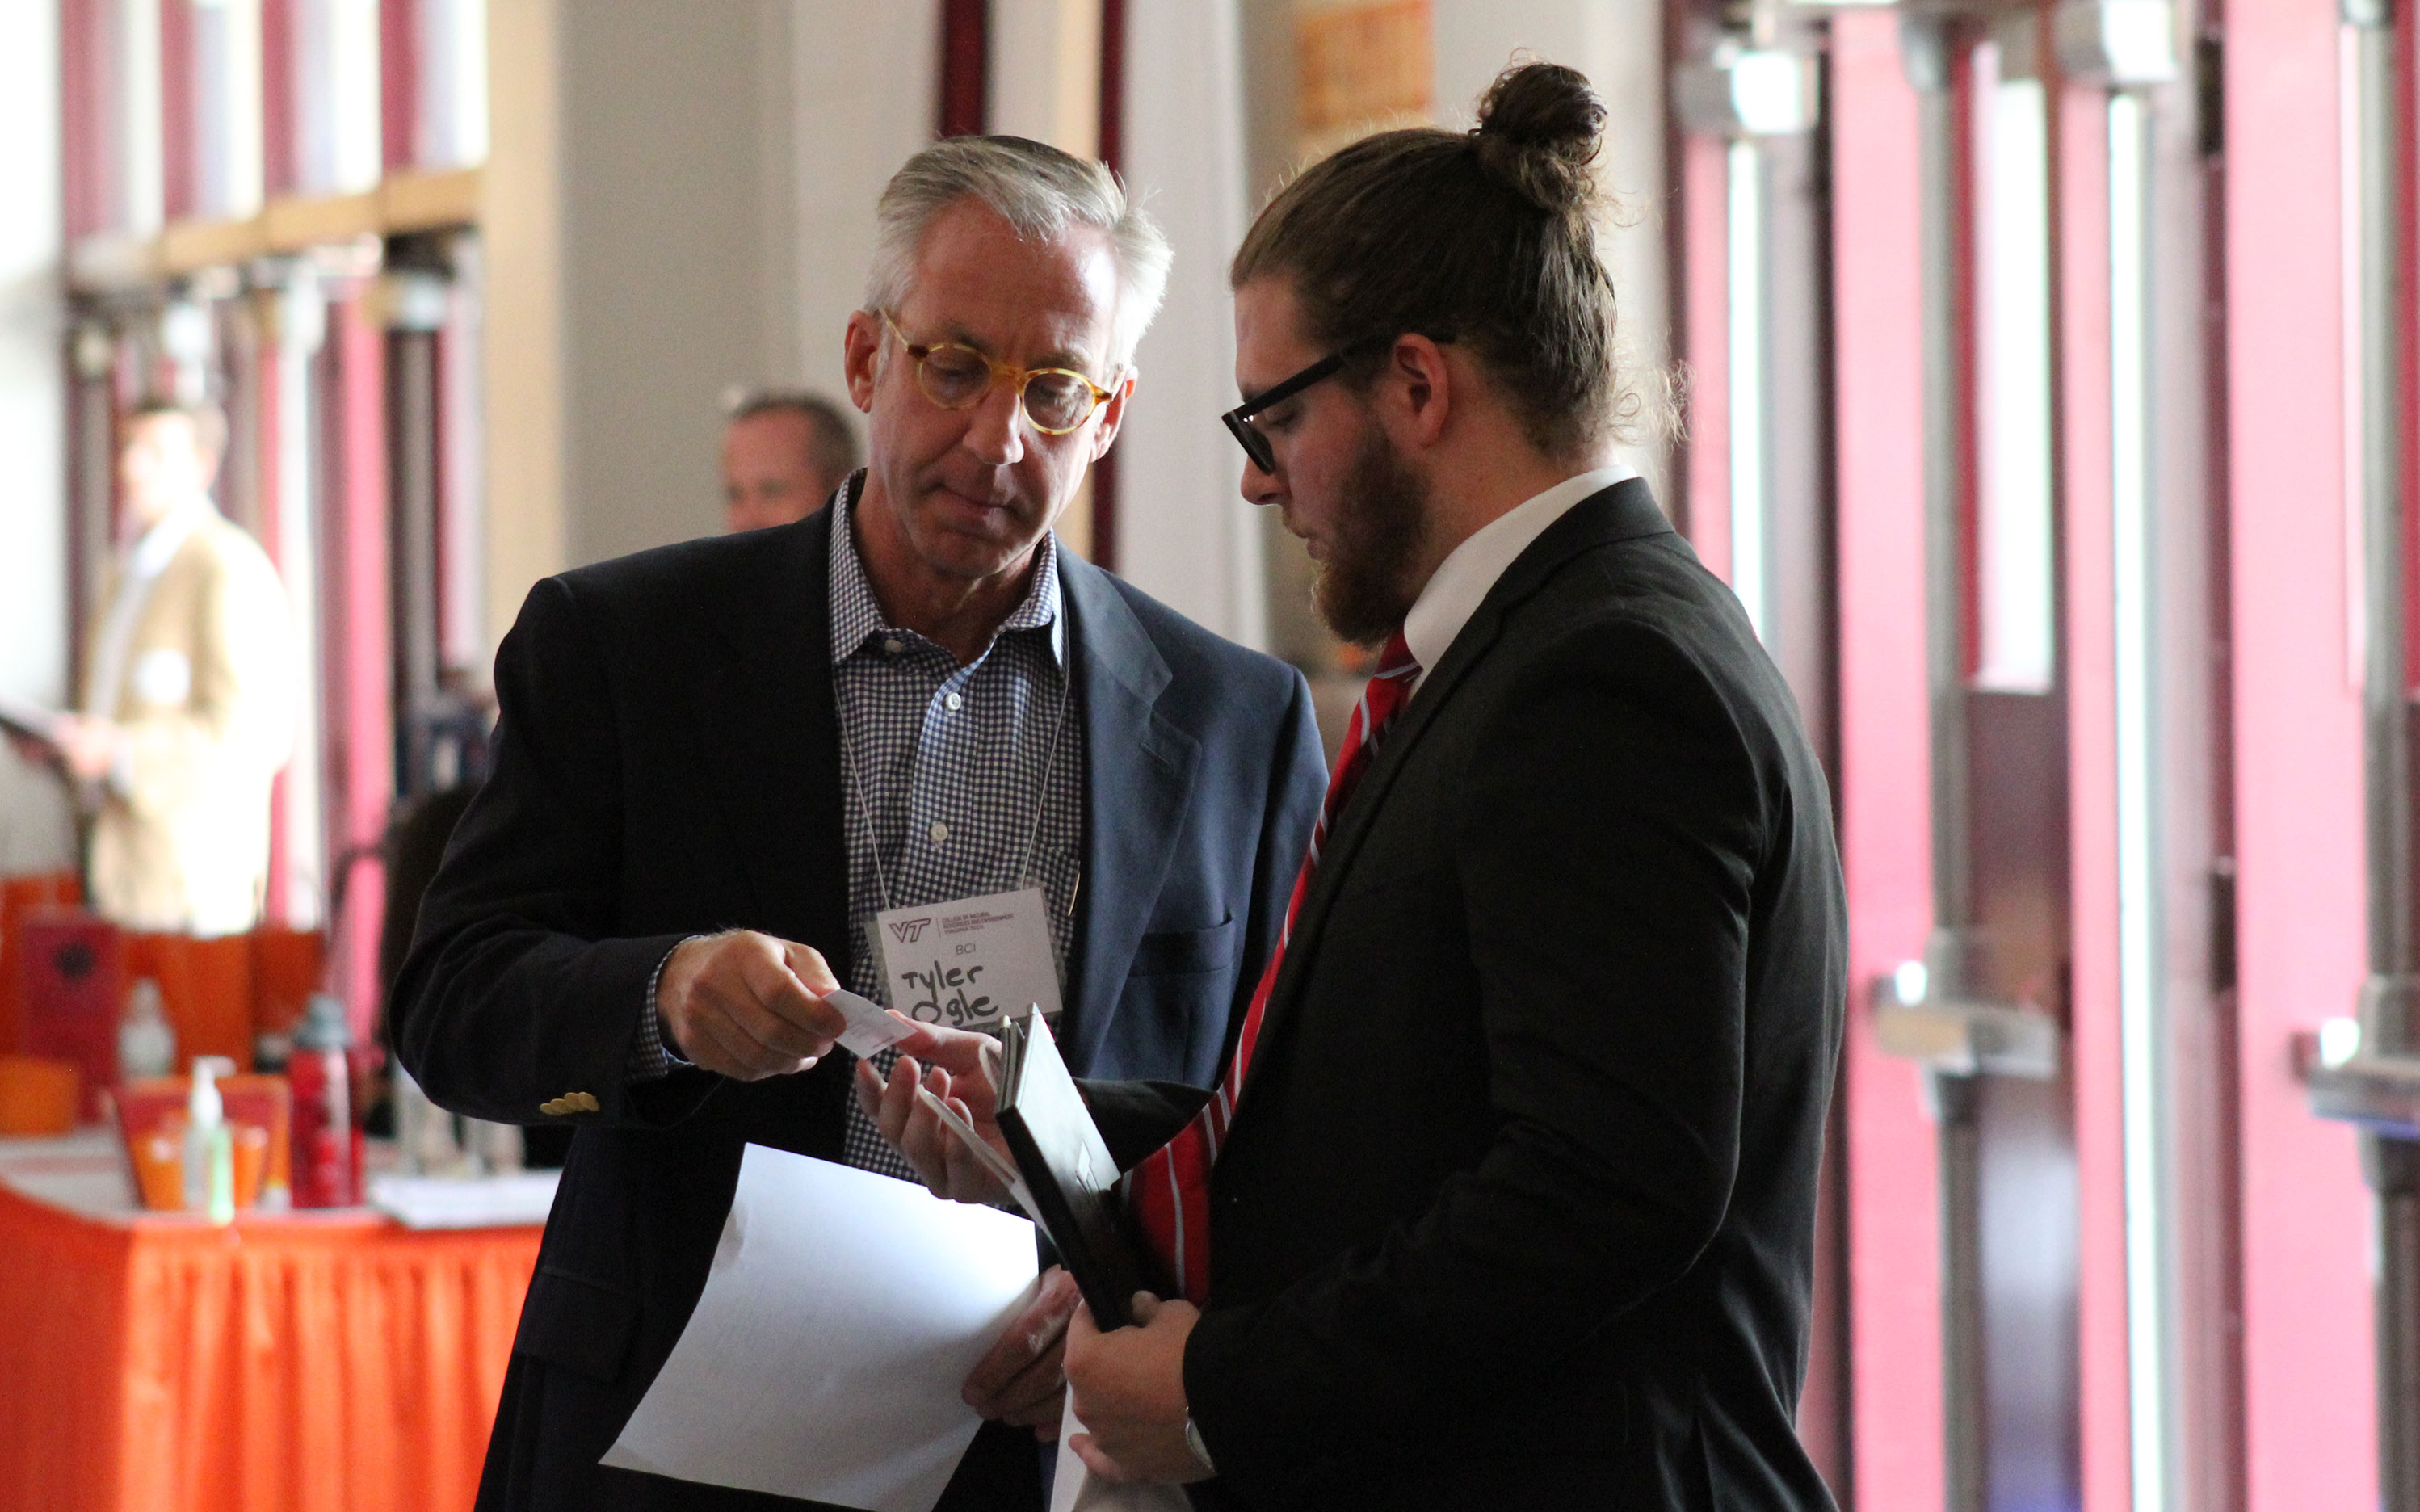 An employer handing a business card to a student at a career fair.